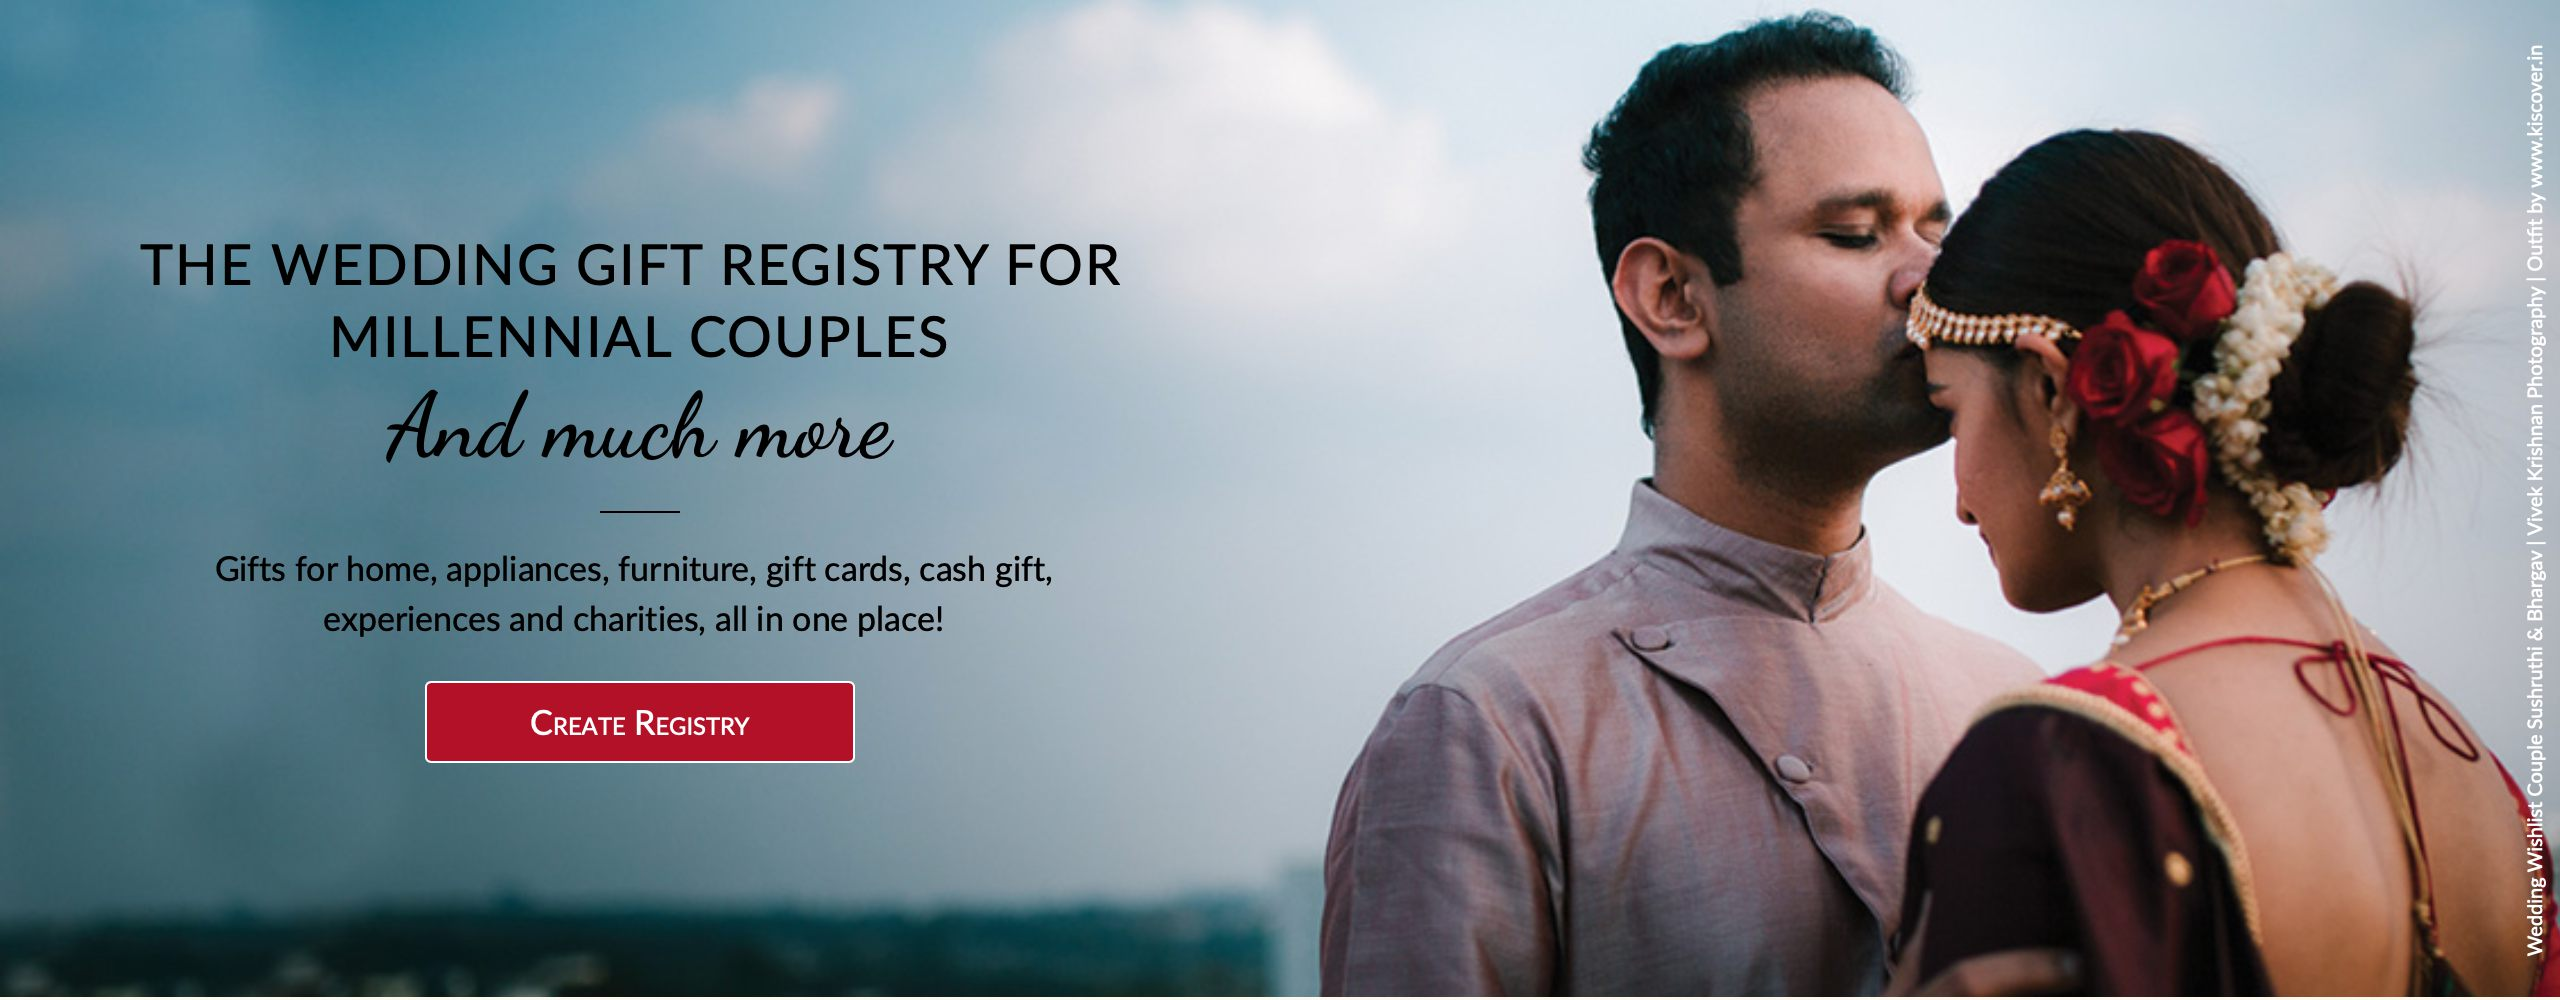 wedding gift registry for millenial couples